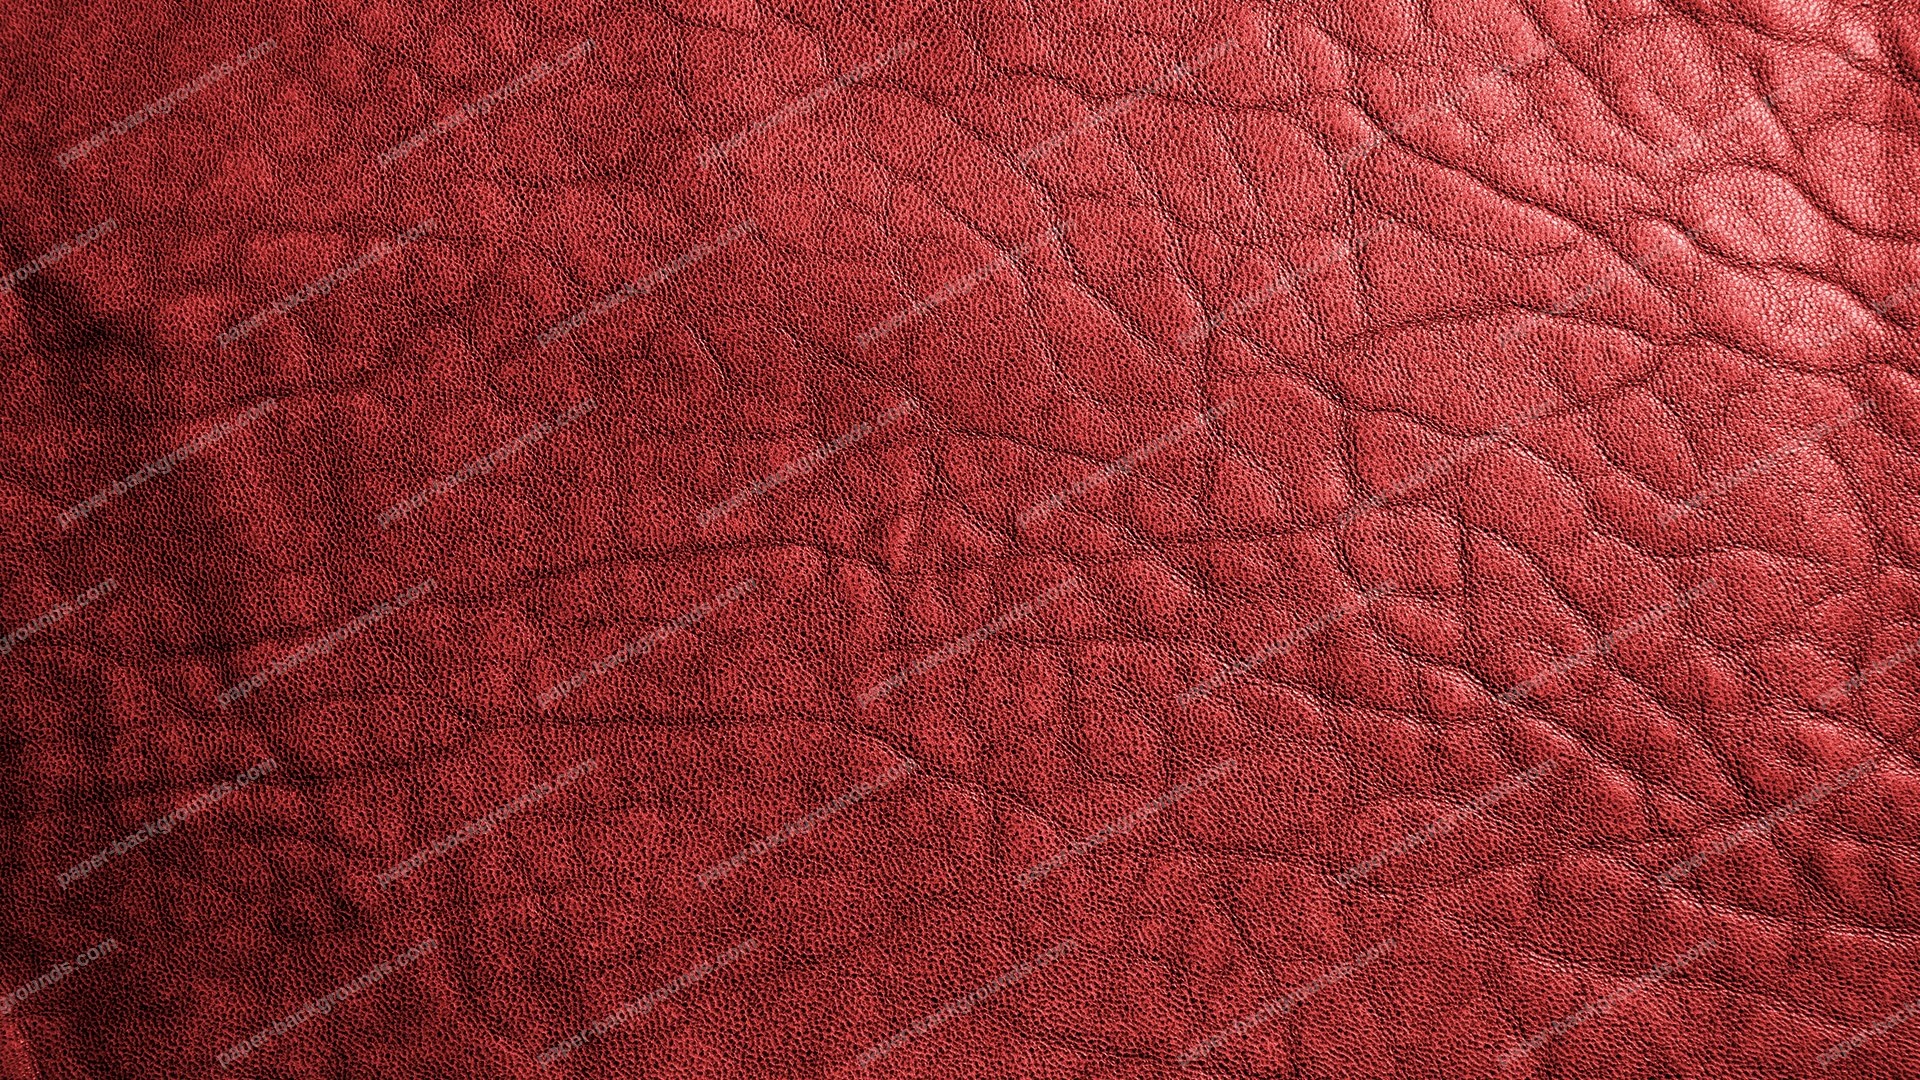 Free Download Red Leather Texture Paper Backgrounds